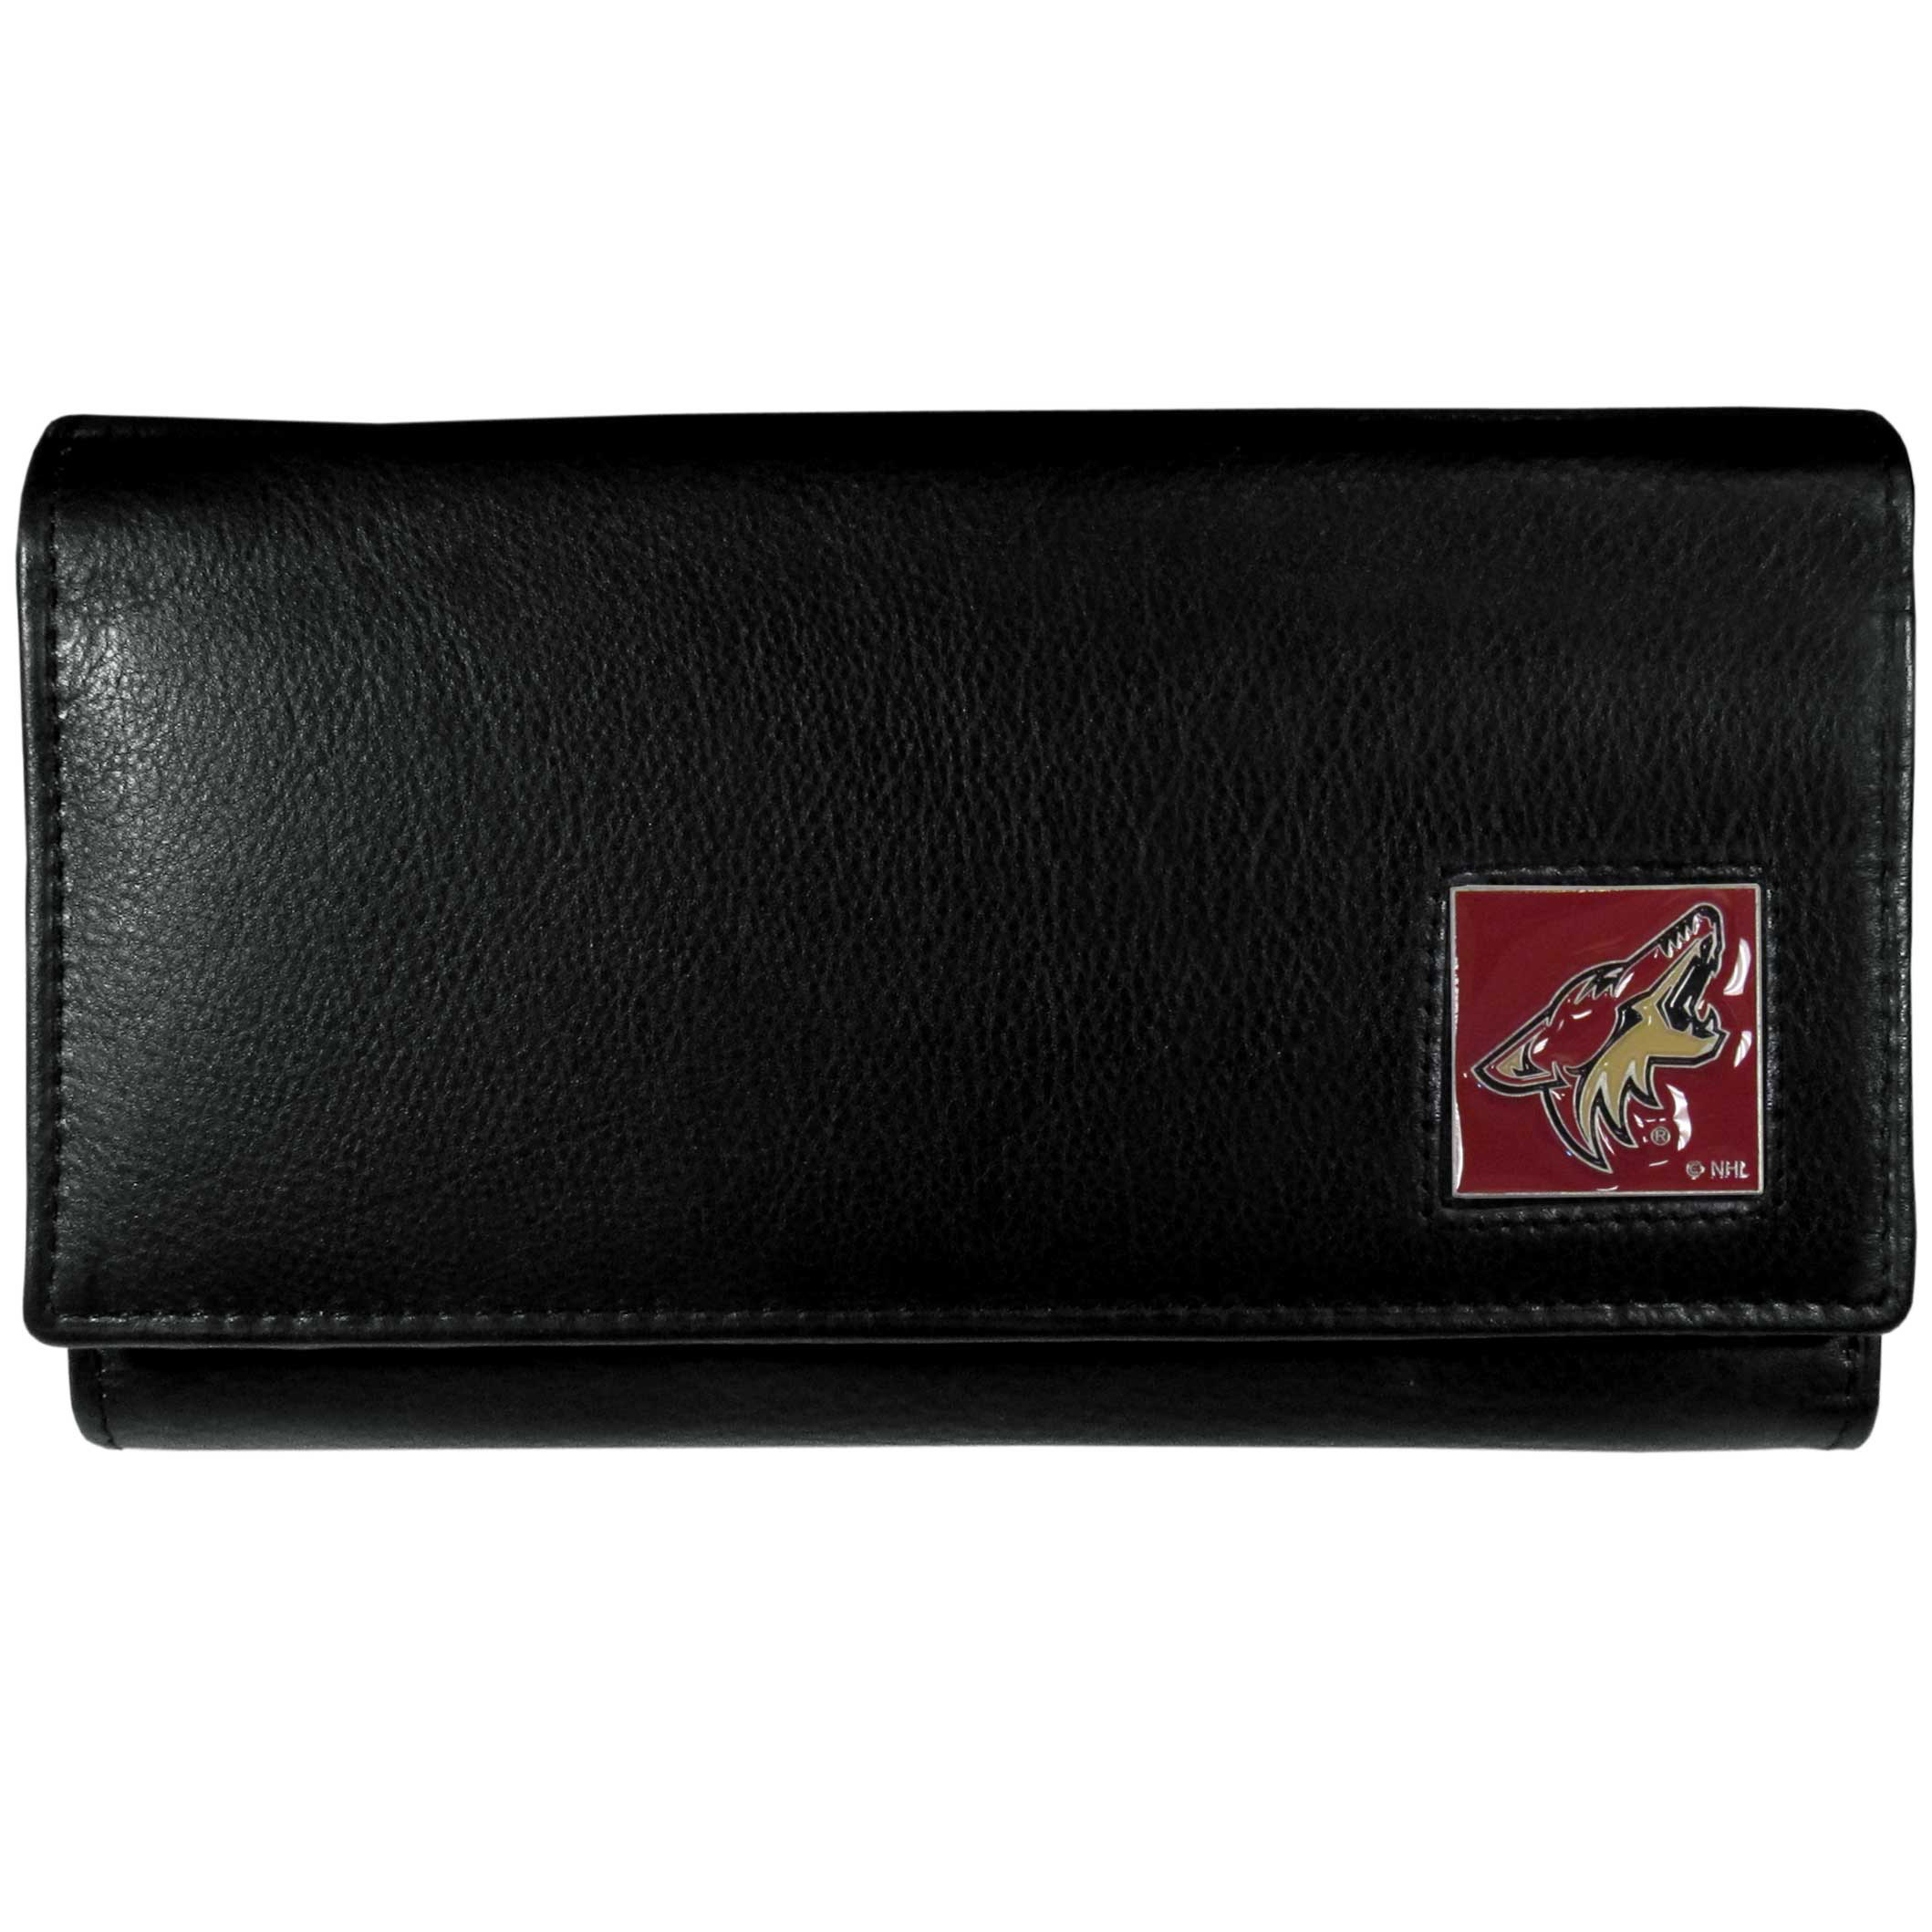 Arizona Coyotes® Leather Women's Wallet - This genuine leather women's pocketbook features 9 credit card slots, a windowed ID slot, spacious front pocket, inner pocket and zippered coin pocket. The front of the pocketbook has a hand painted metal square with the Arizona Coyotes® primary logo.